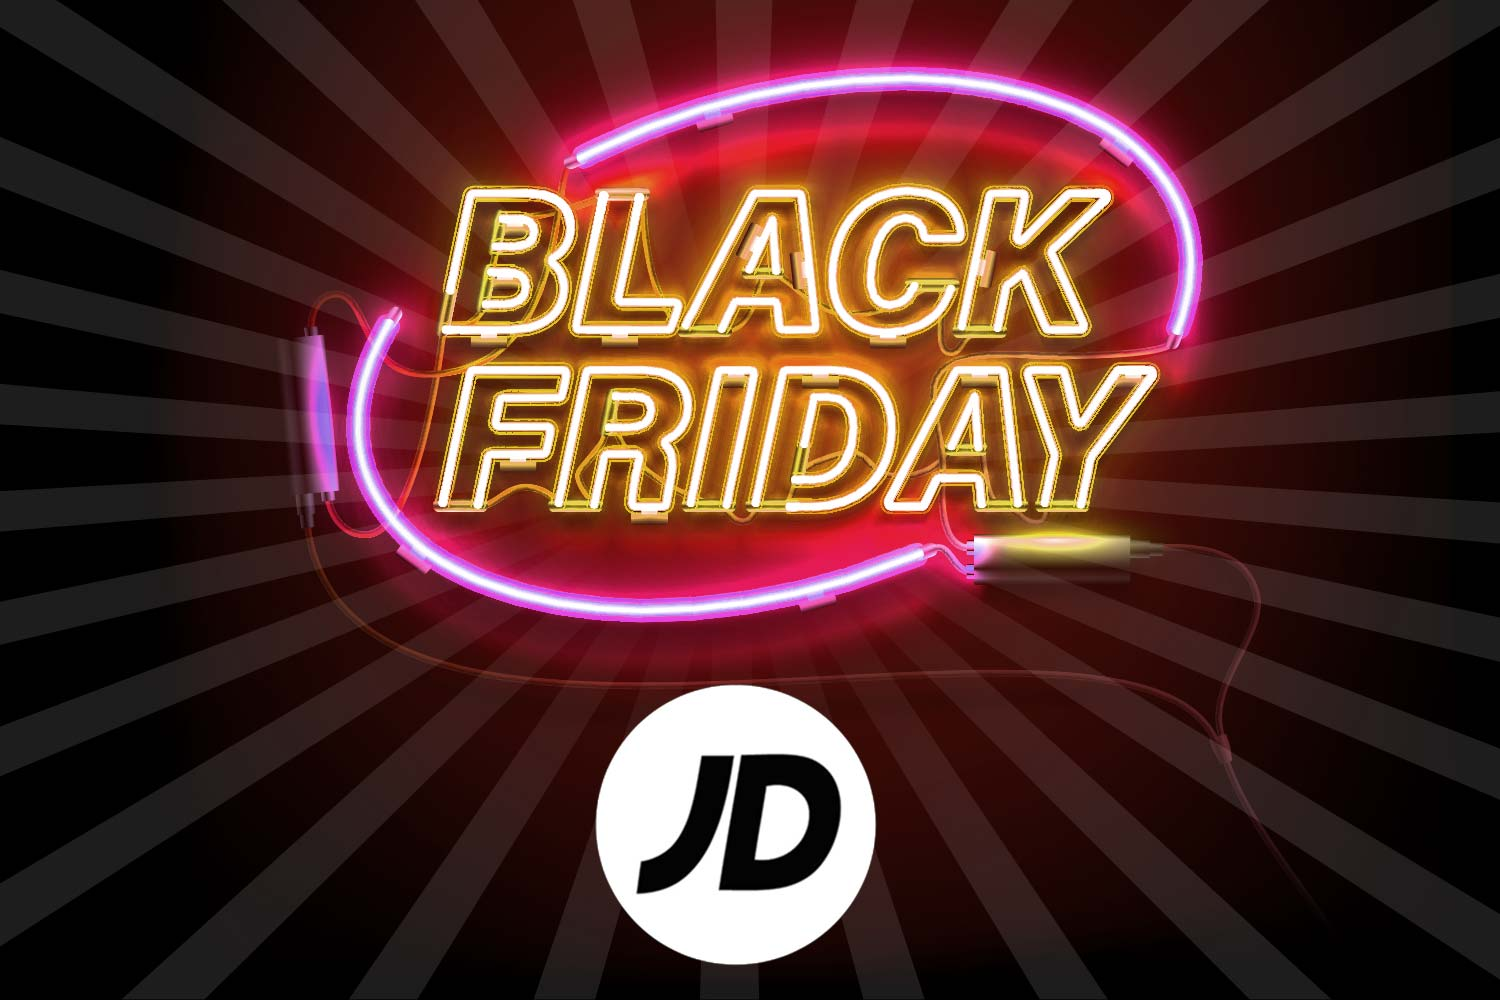 JD Sport could kick off its sale much earlier than November 27